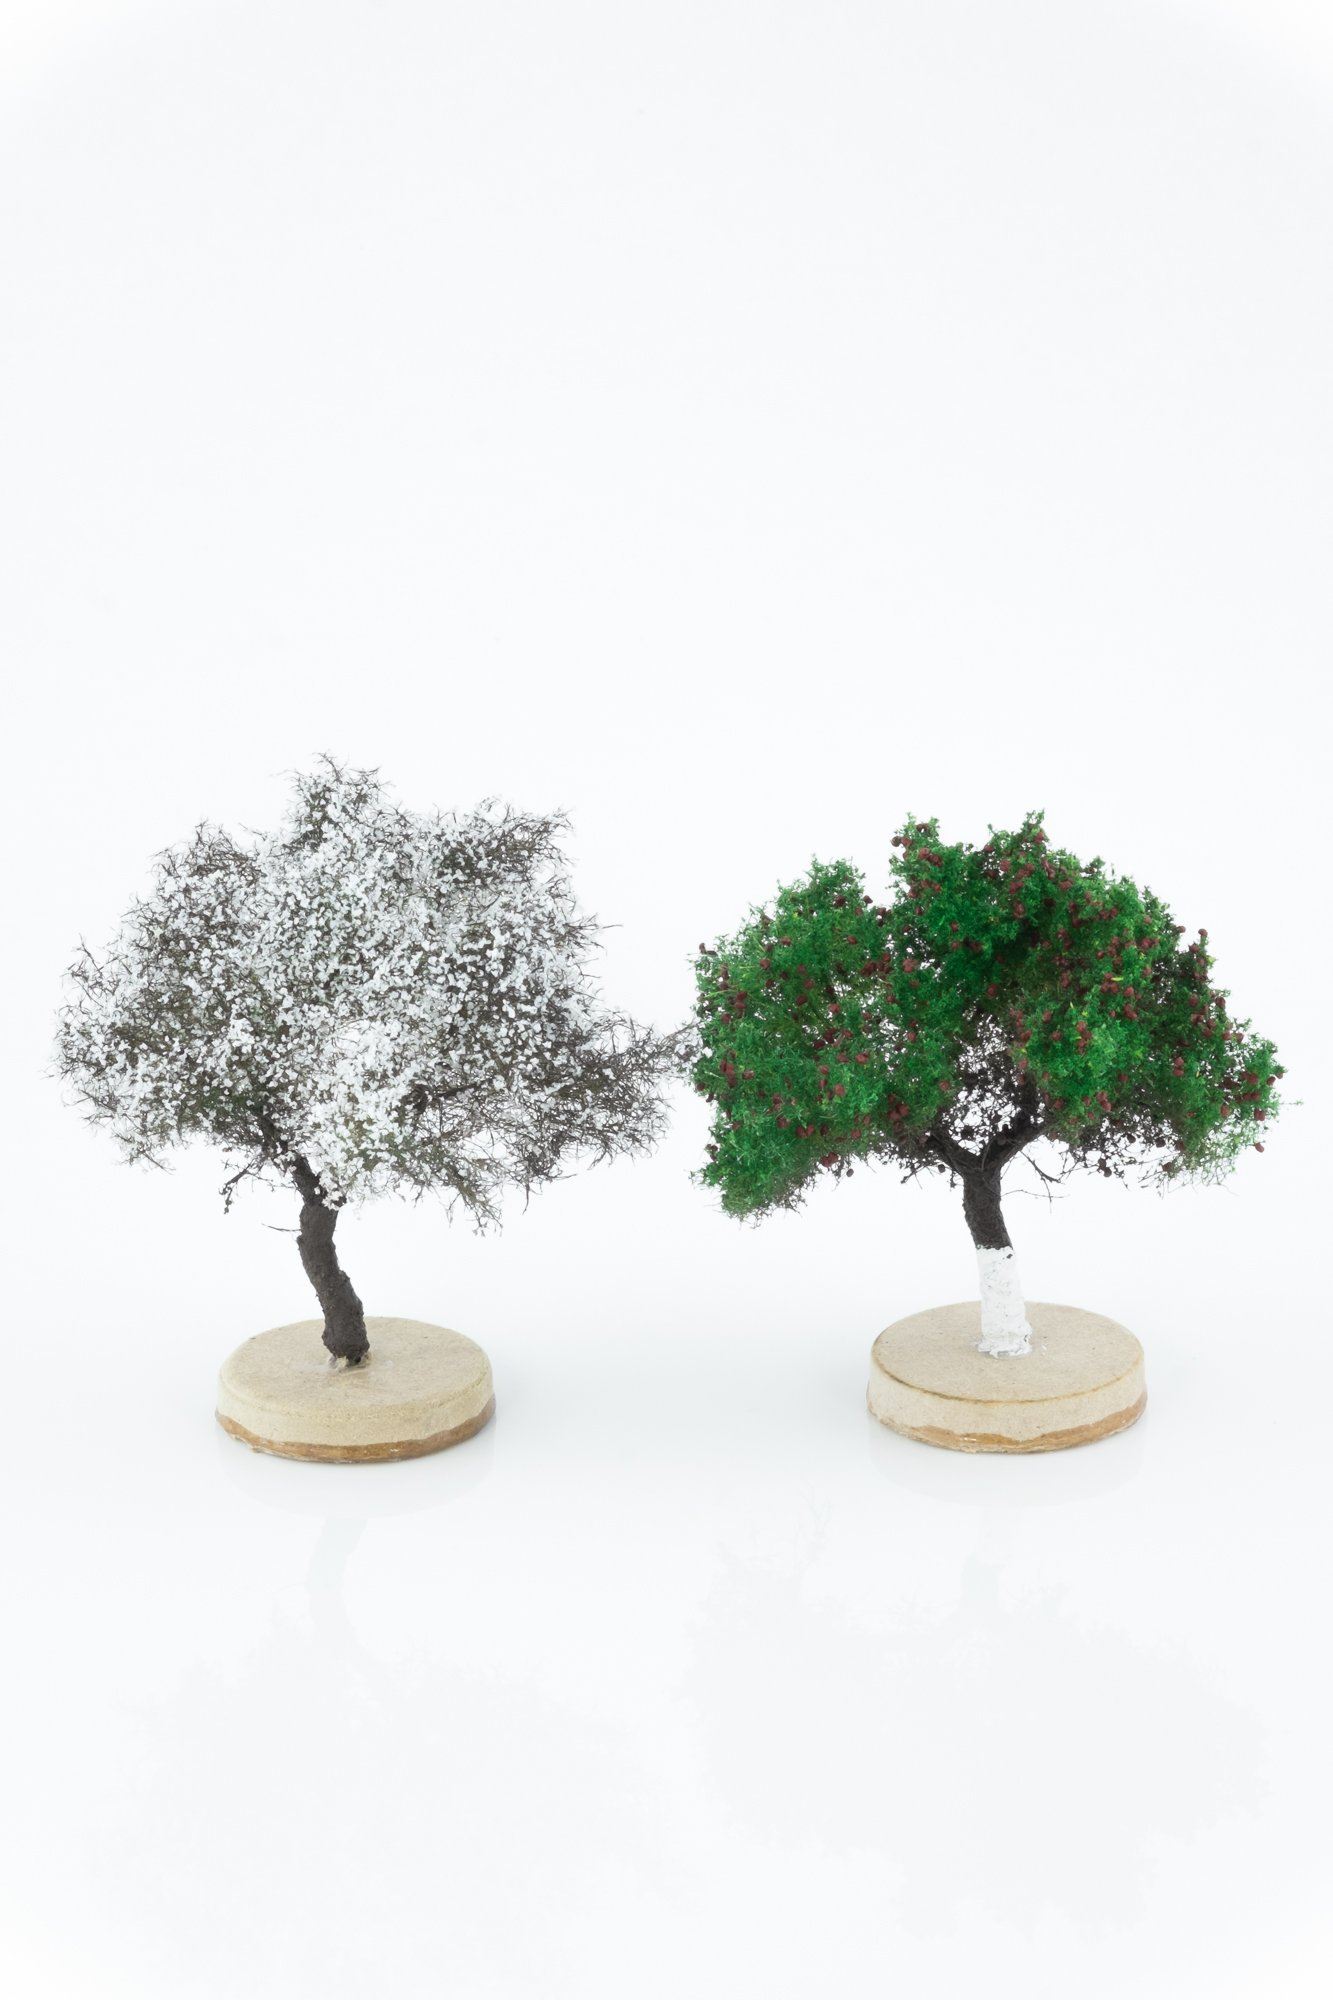 Two types of hand-made, apple model trees. Size between 6 and 8 cm. Made from high quality model supplies by Primo Models.